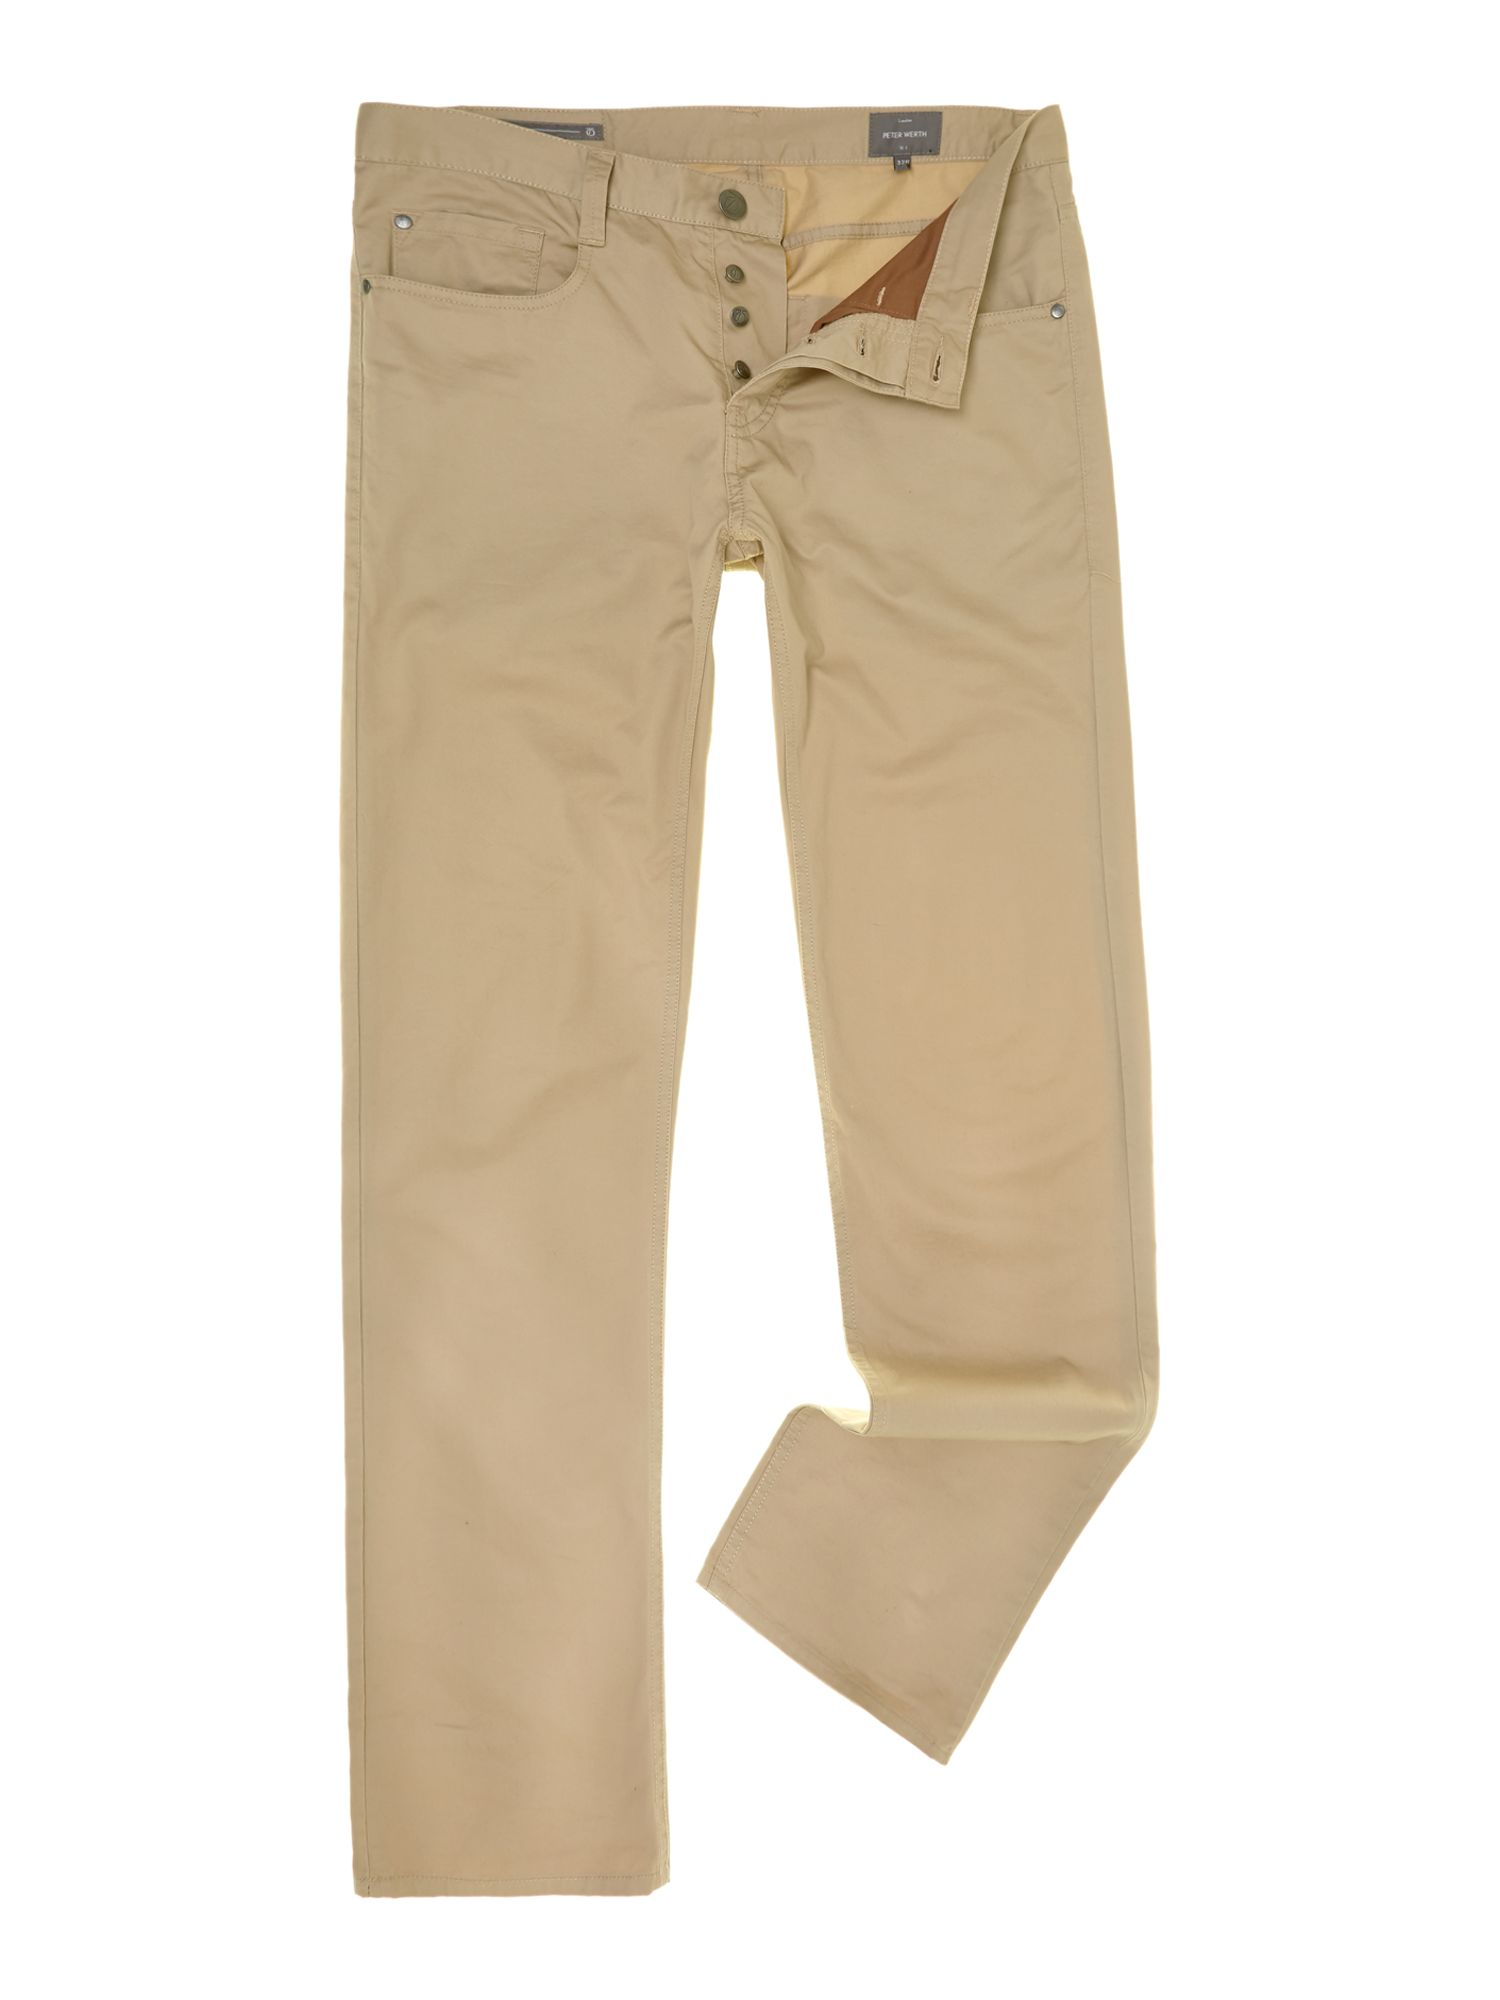 Mirasol cotton trouser